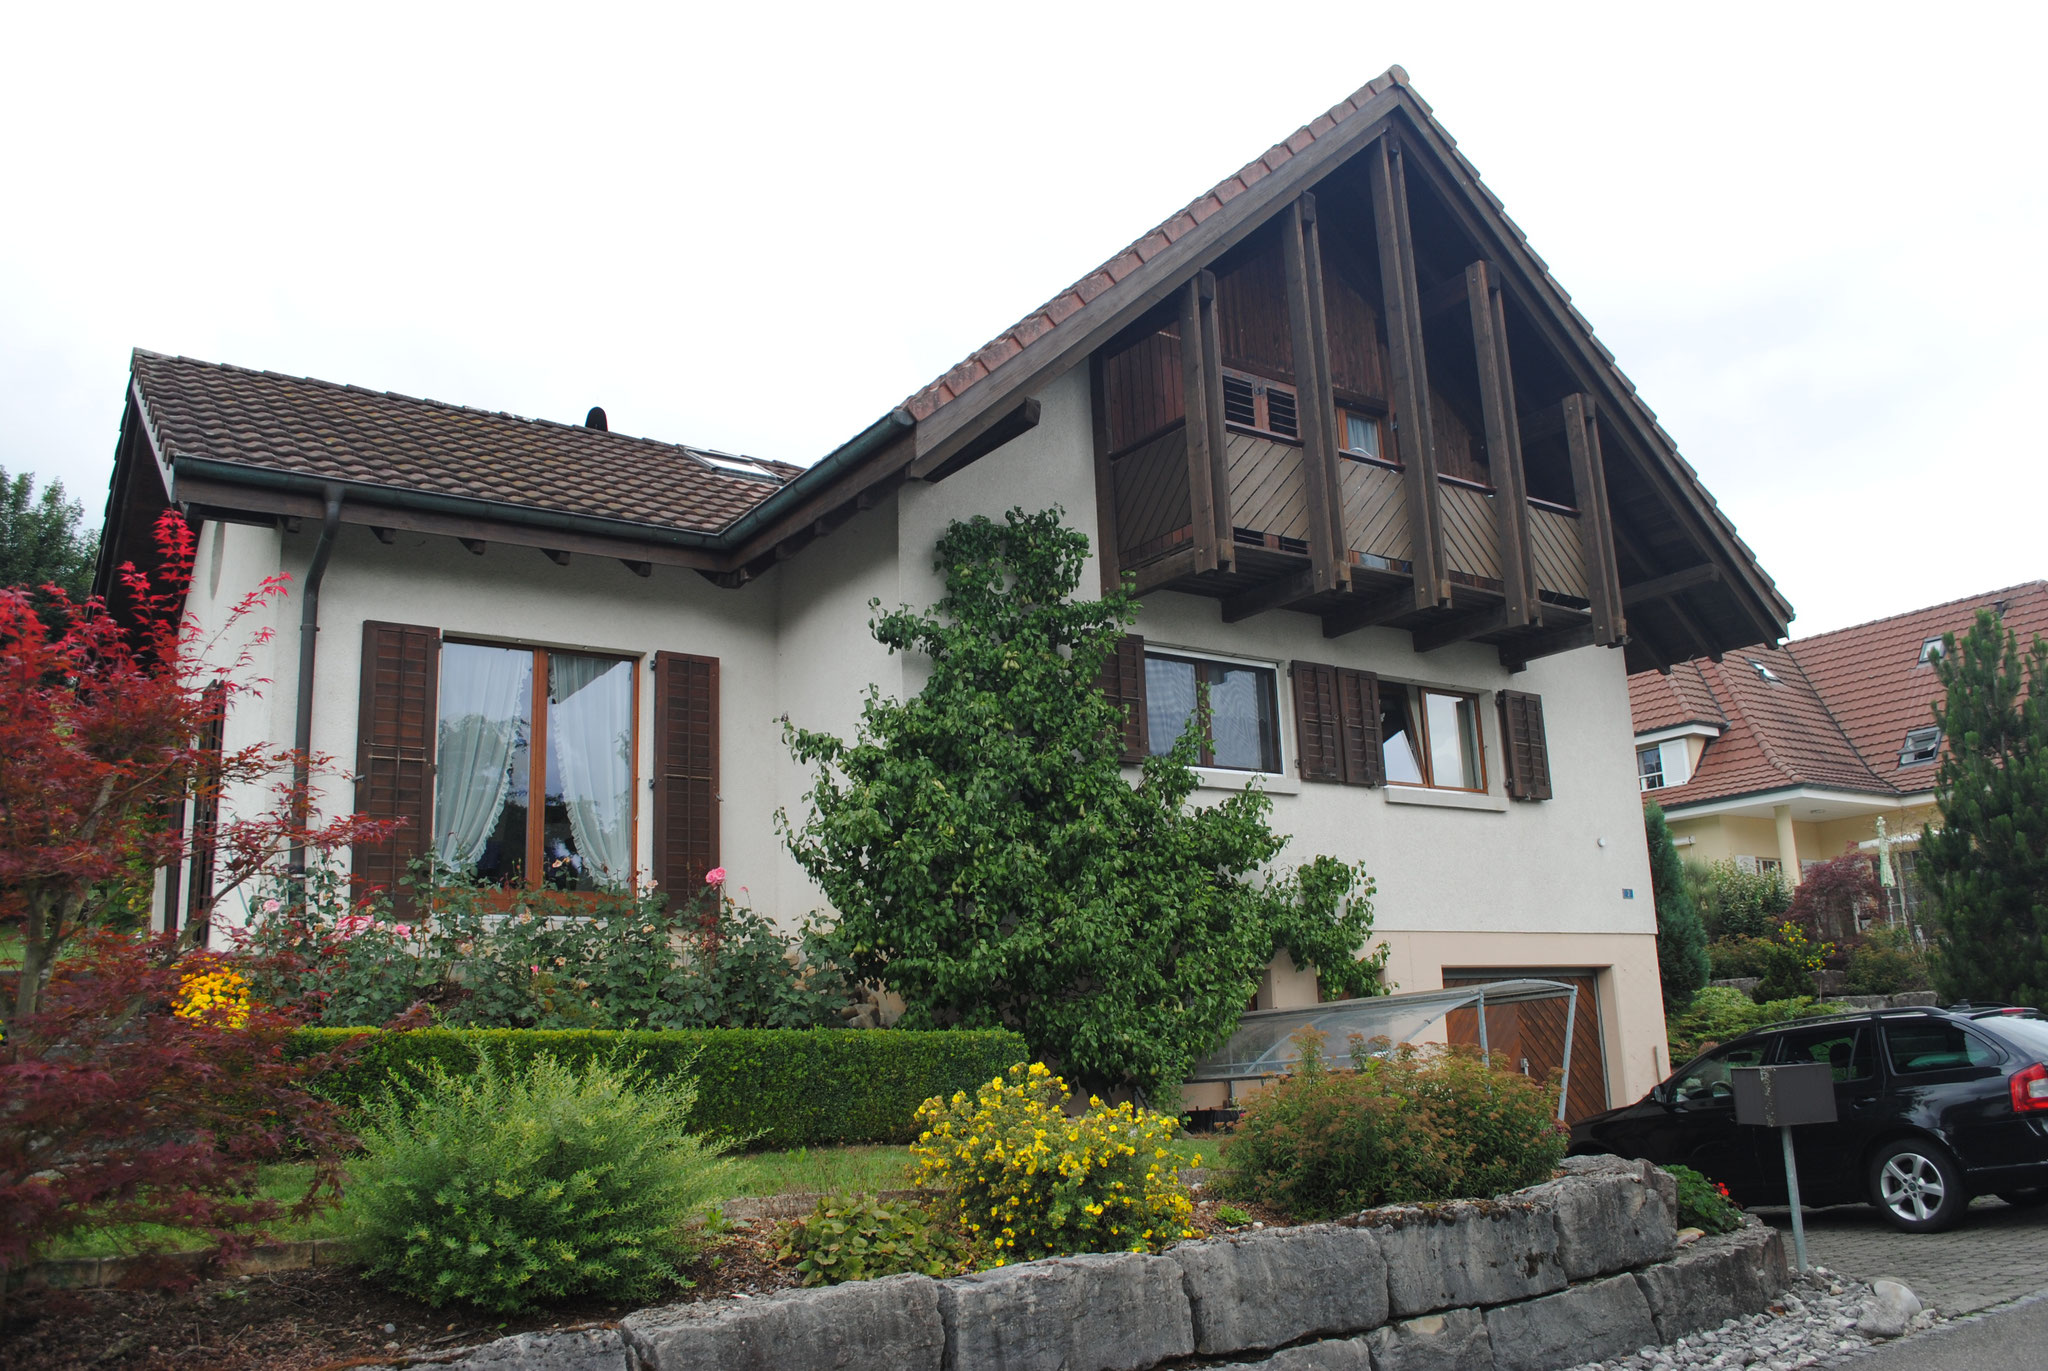 Haus in Gipf-Oberfrick